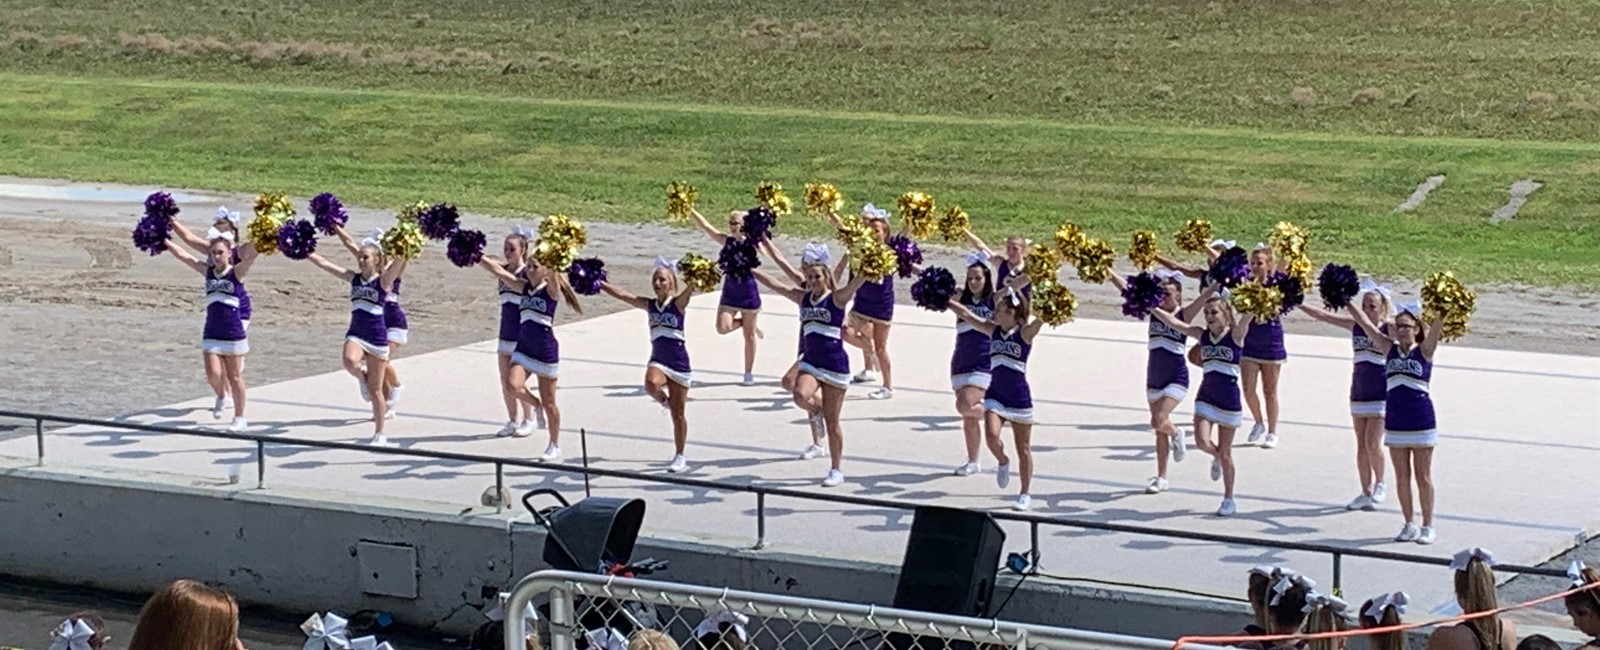 Our Cheerleaders did an awesome job representing Sebring in the Canfield Fair Cheerleading Demonstration!